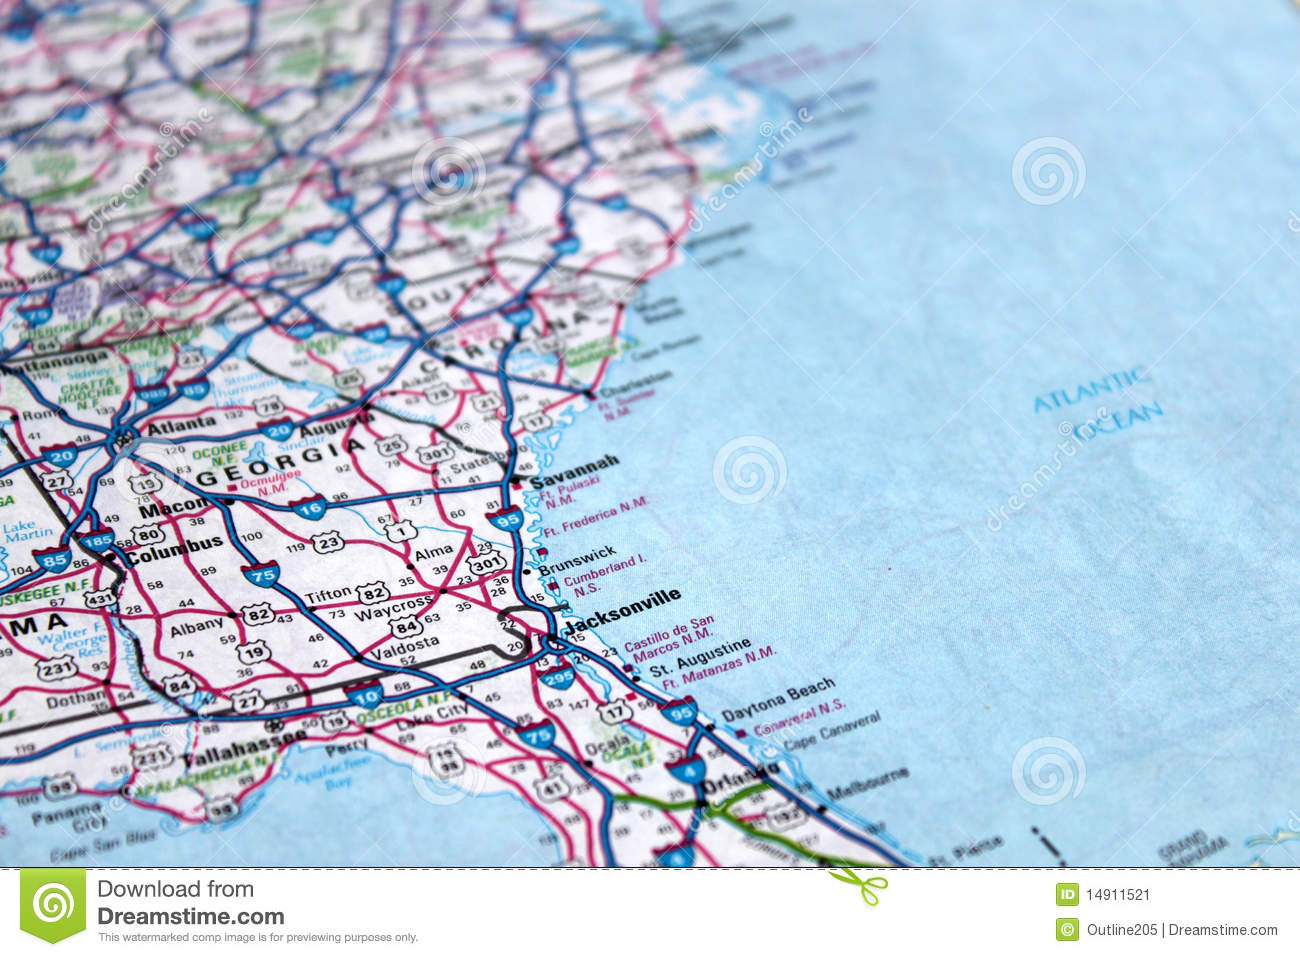 Map east coast america stock image. Image of atlantic - 14911521